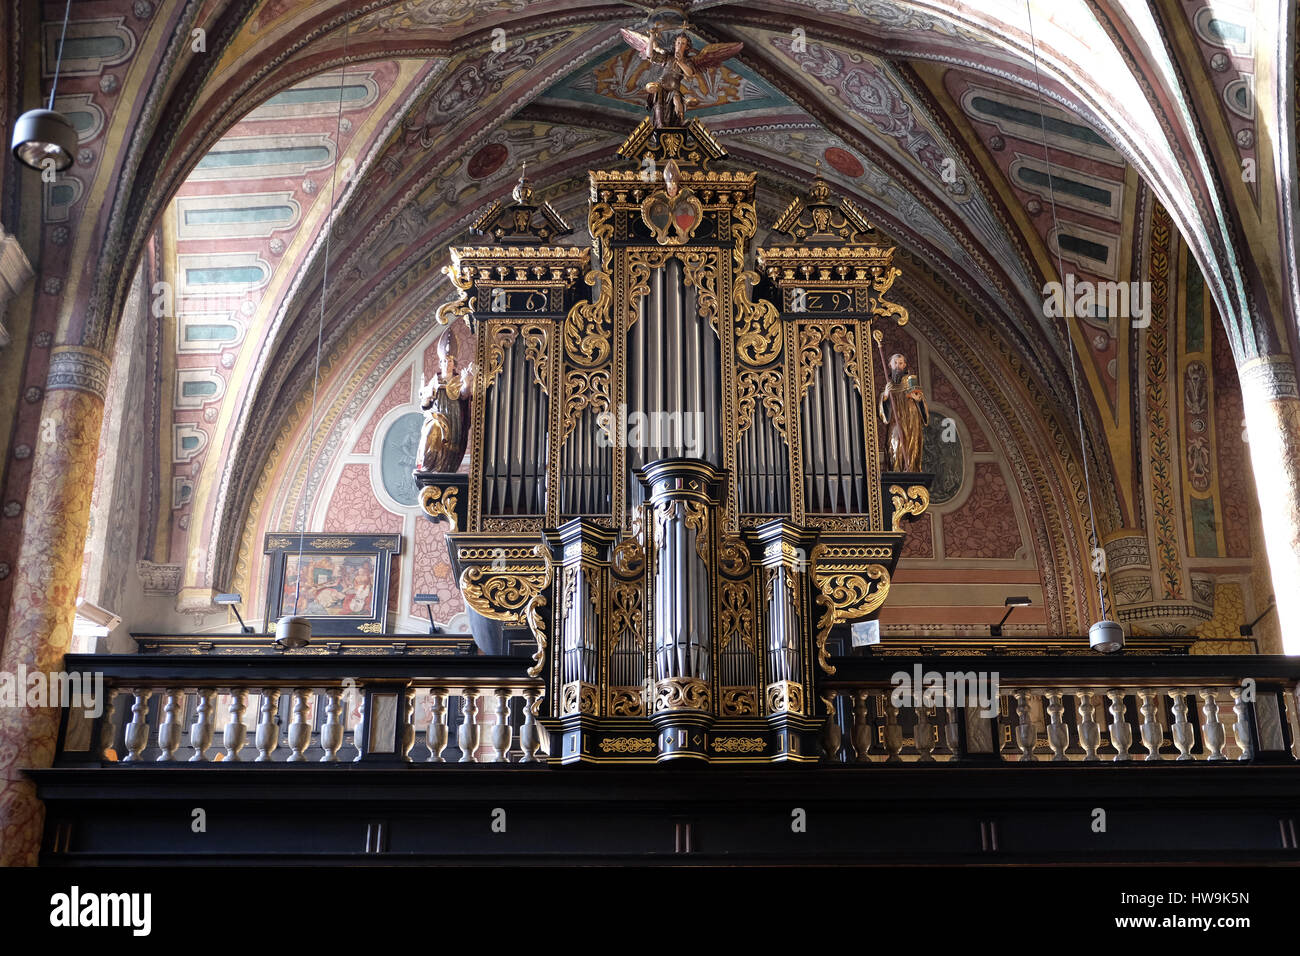 Organ in the choir of Parish church in St. Wolfgang on Wolfgangsee in Austria on December 14, 2014. - Stock Image